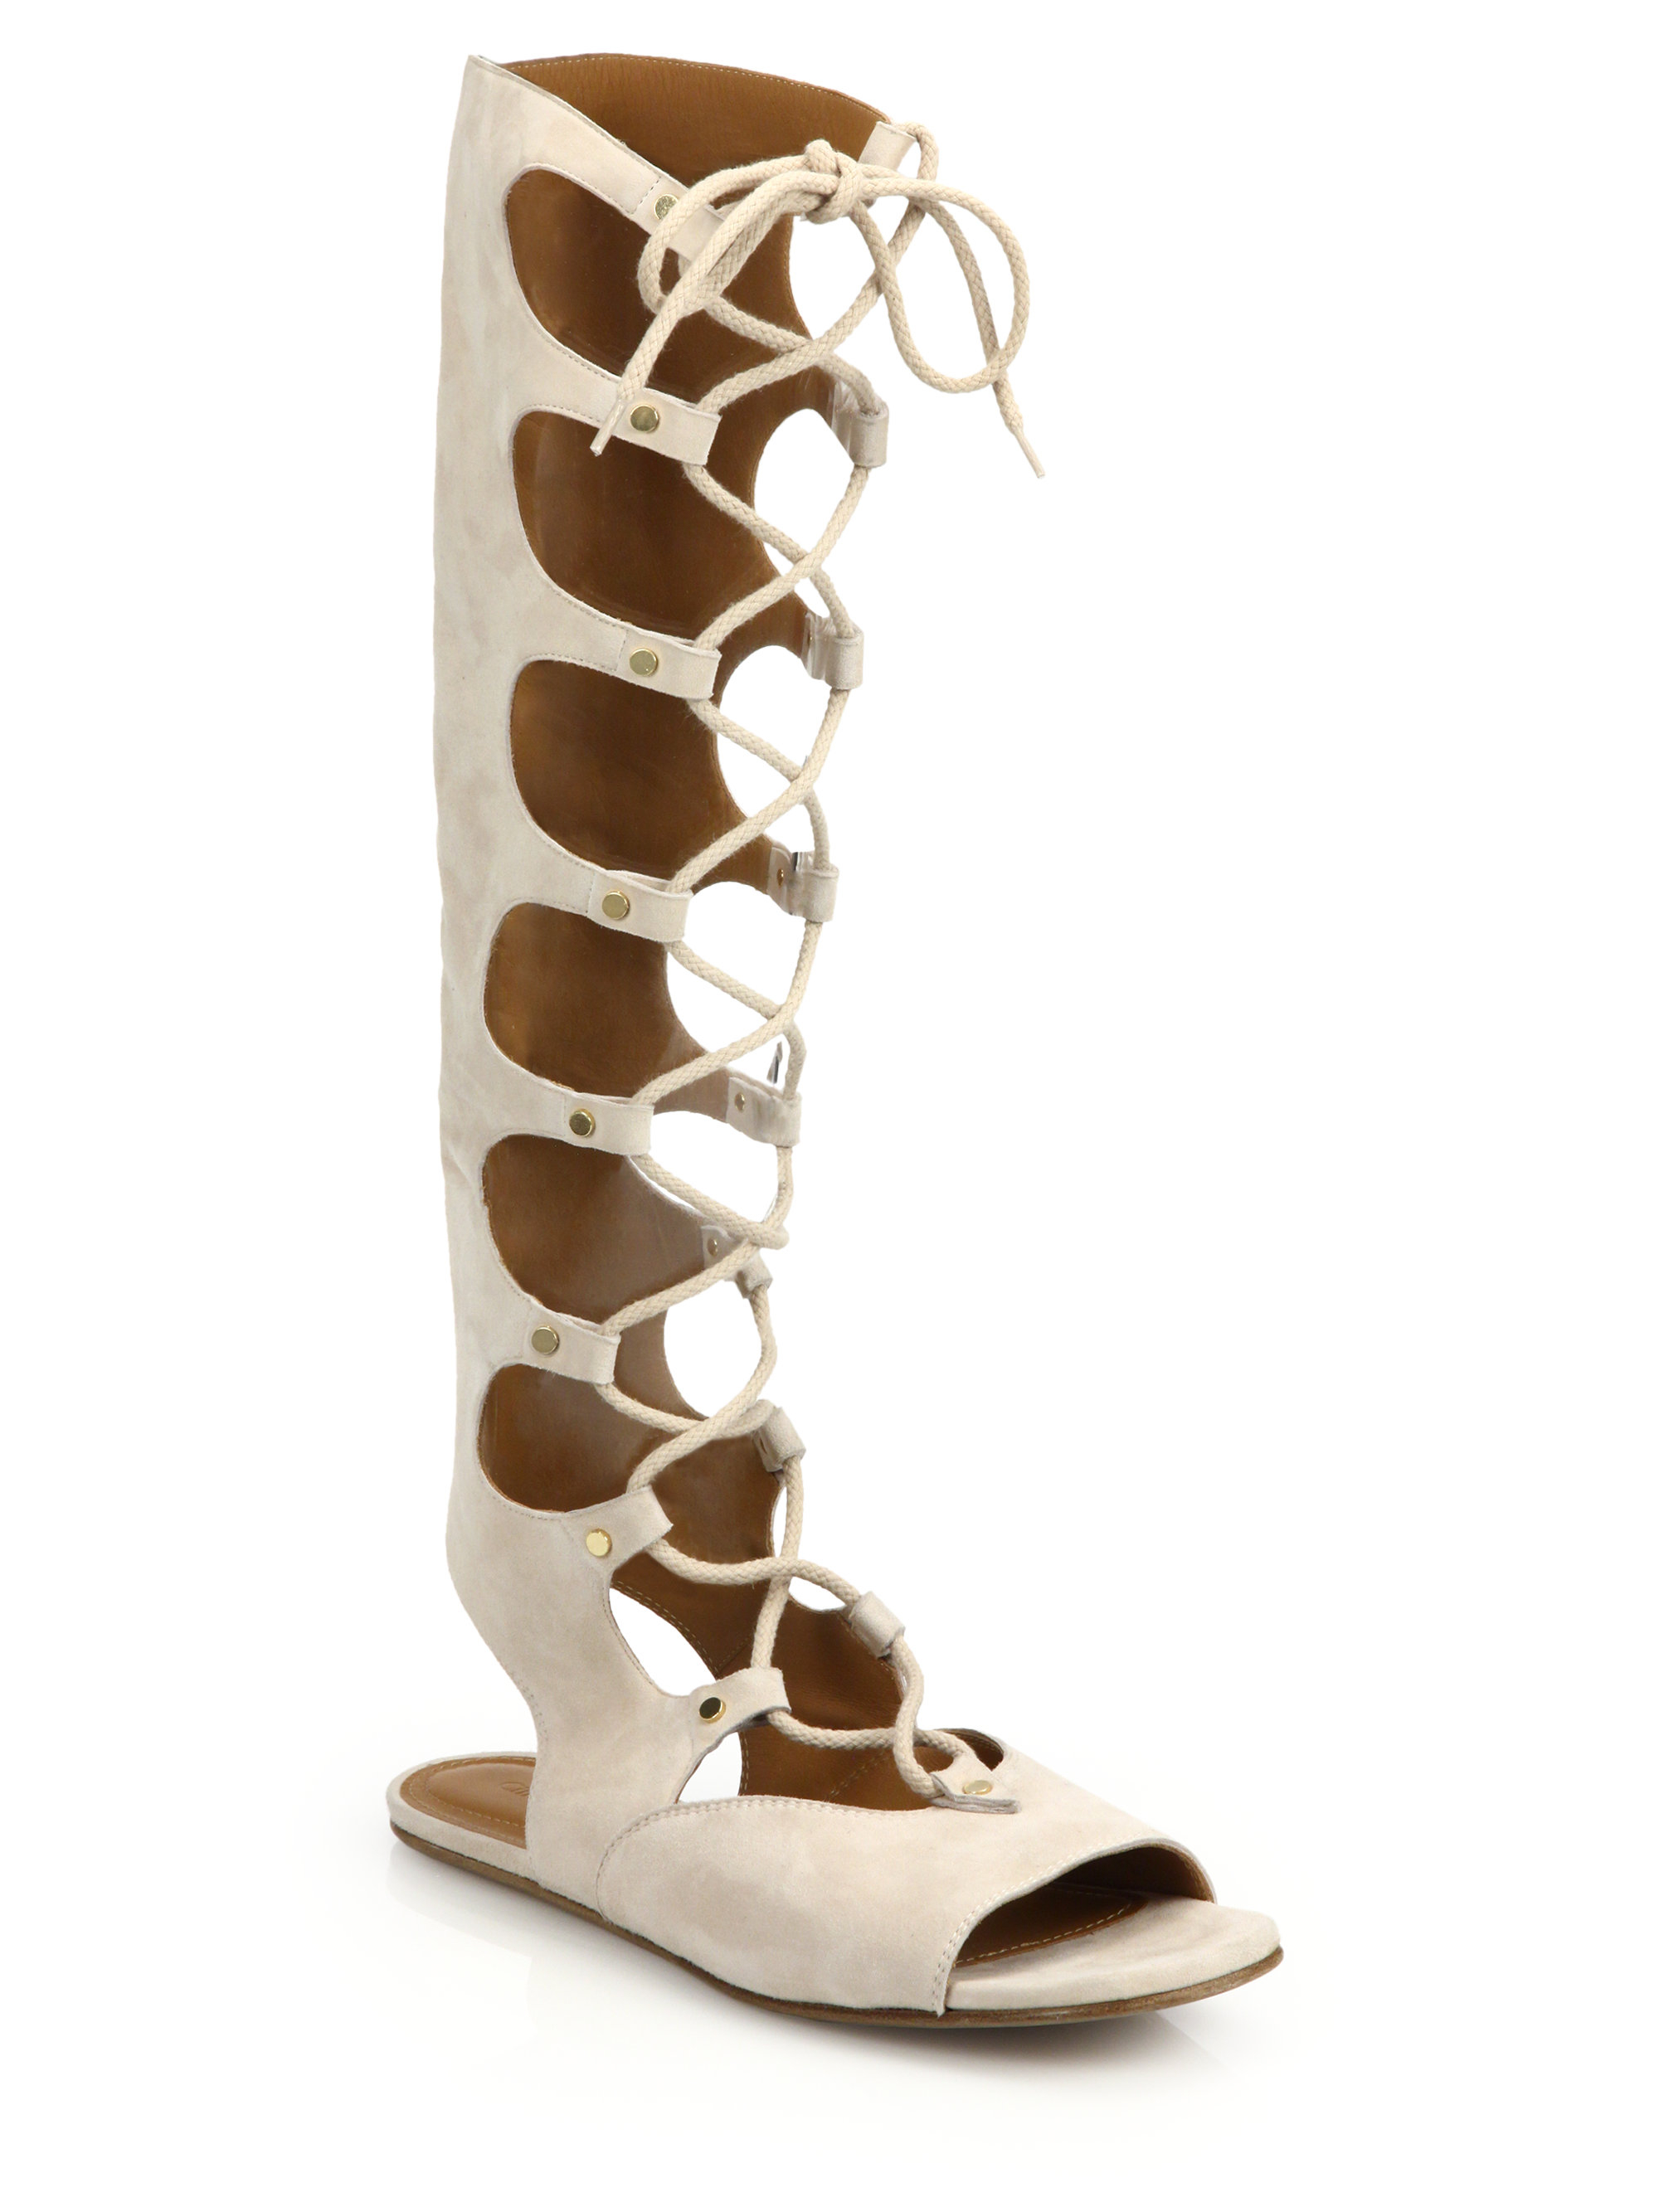 046cd14a89b6 Lyst - Chloé Suede Knee-high Lace-up Sandals in Natural